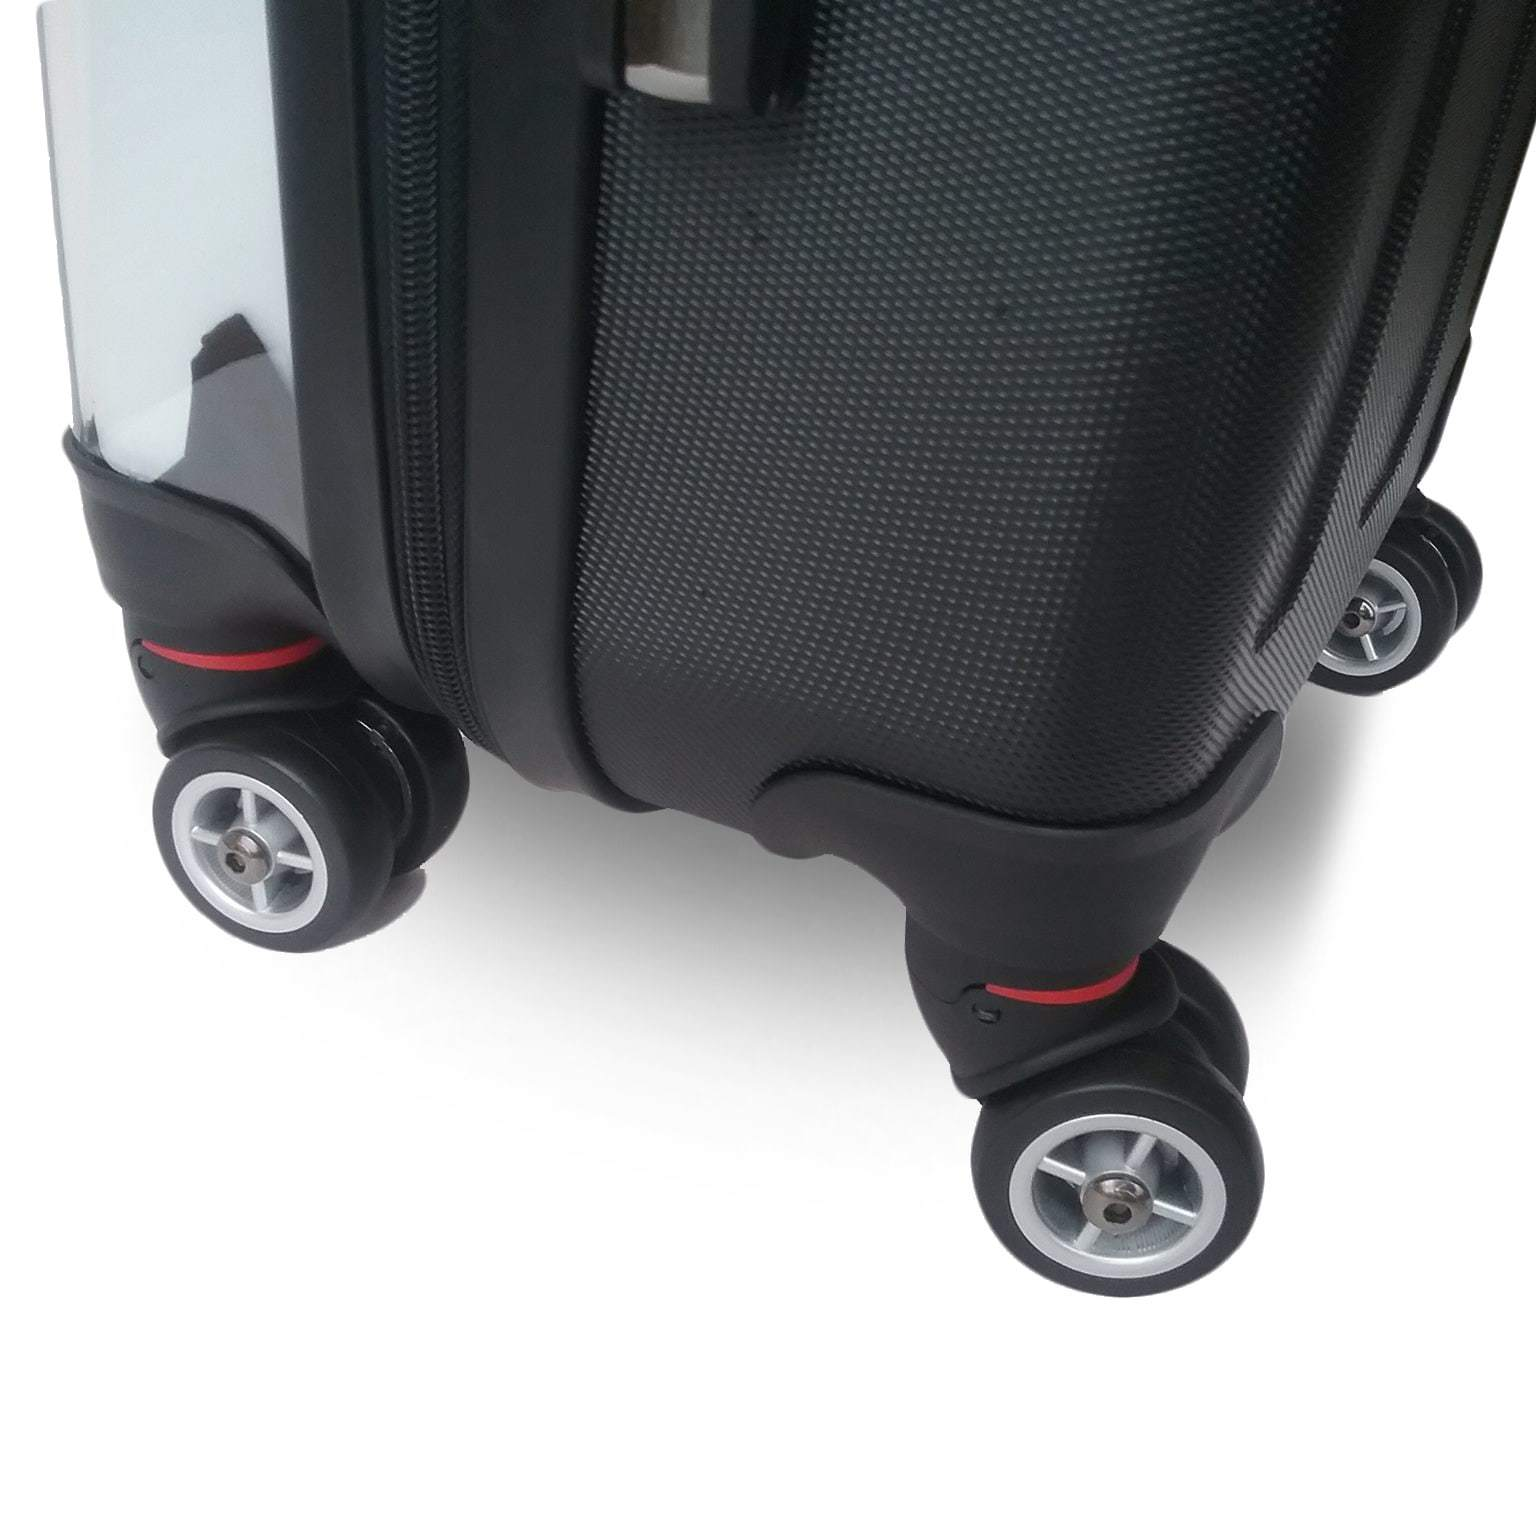 Personalised suitcase with 8 wheels